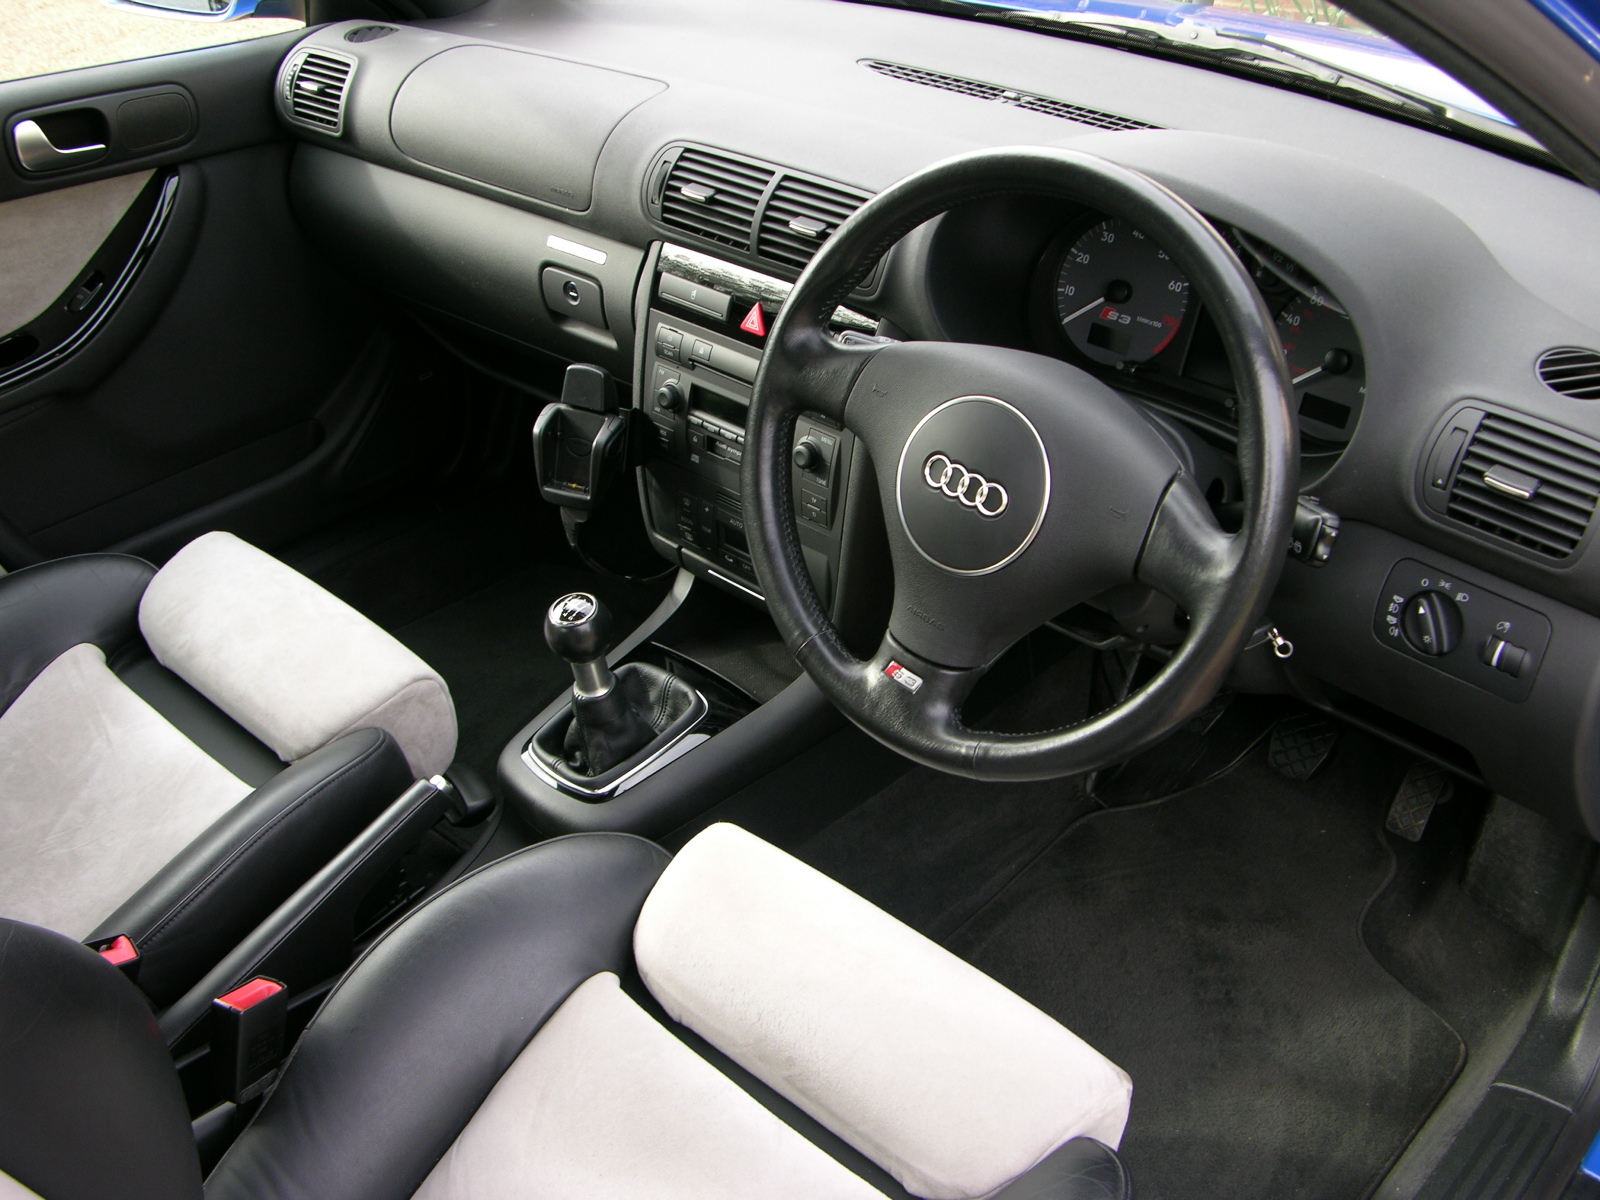 file audi s3 nogaro blue 2001 flickr the car spy 4 jpg wikimedia commons. Black Bedroom Furniture Sets. Home Design Ideas